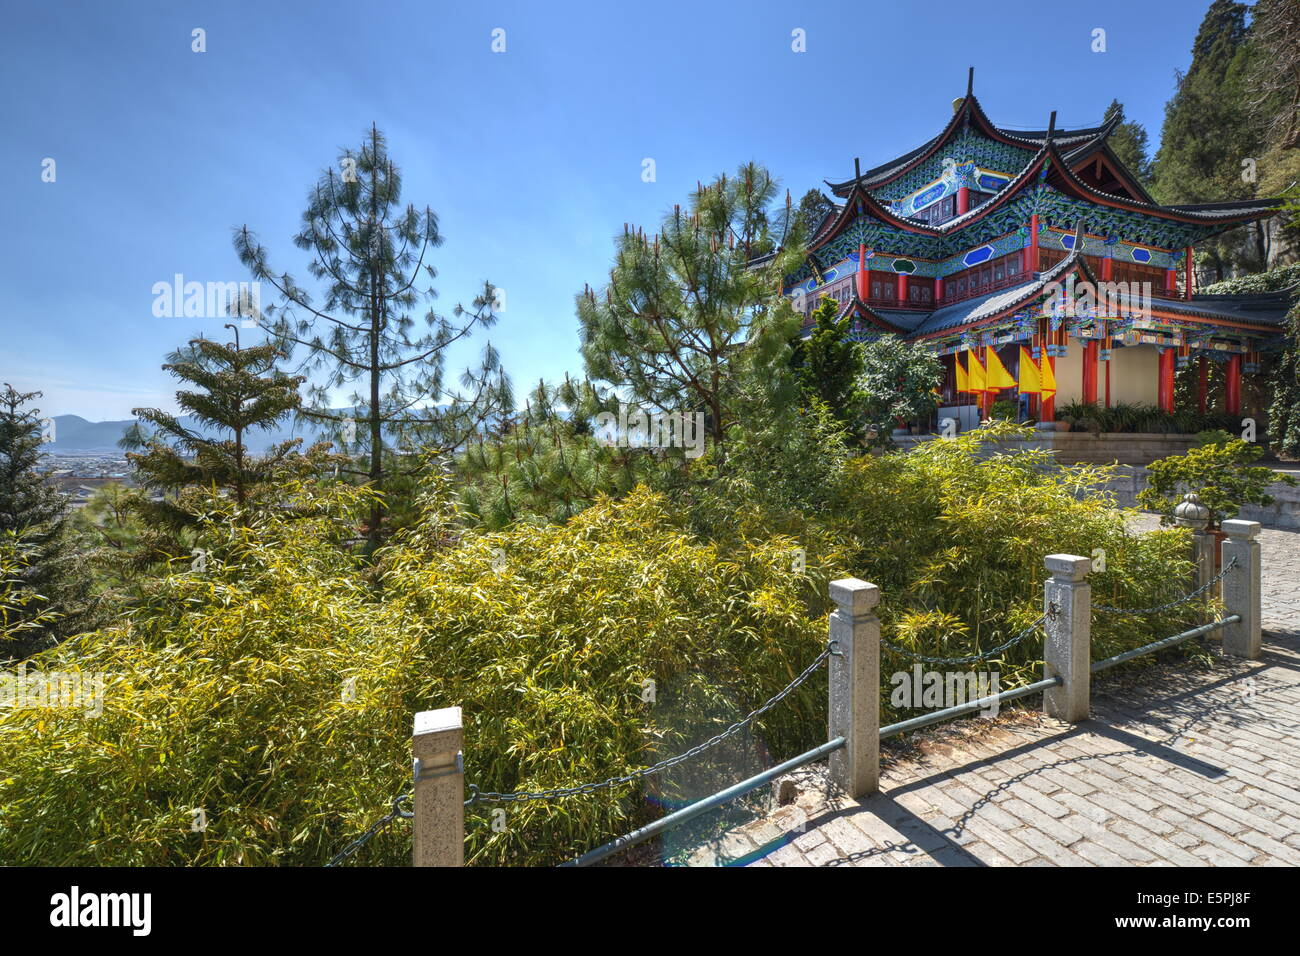 Temple and vegetation in Lijiang, part of the Mufu Wood Mansion complex, Lijiang, Yunnan, China, Asia - Stock Image